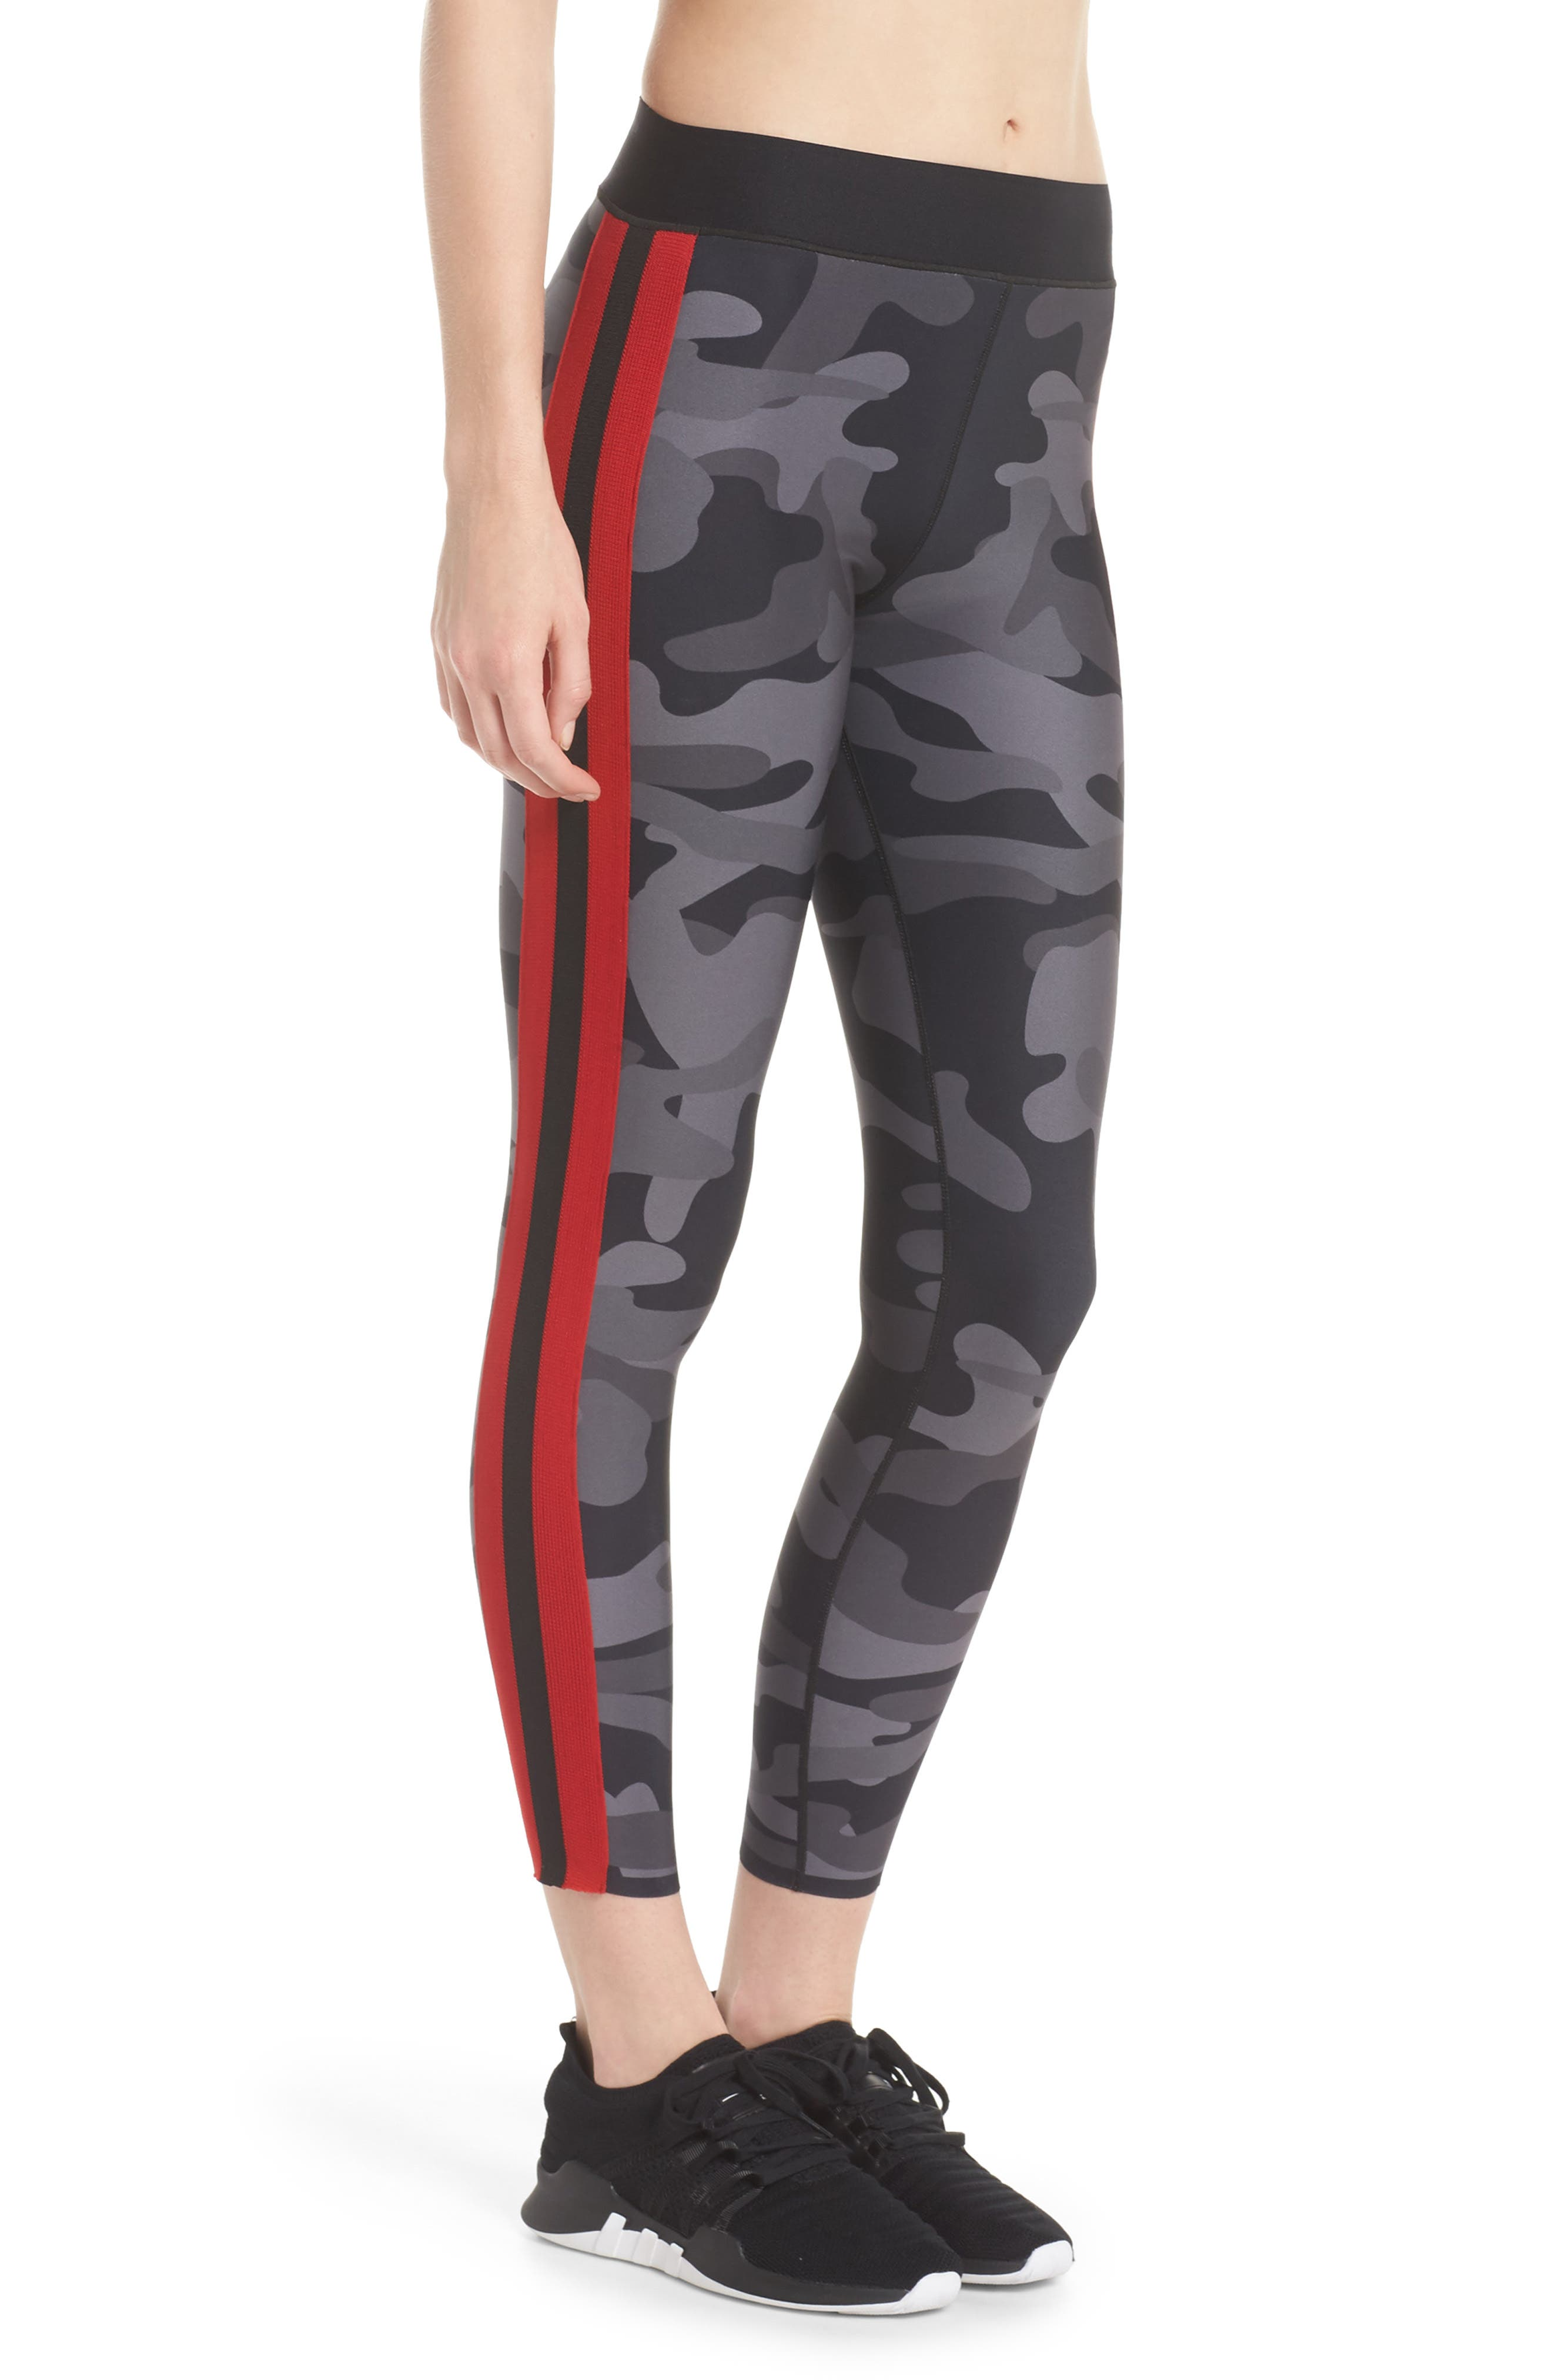 Ultra Camo Collegiate Leggings,                             Alternate thumbnail 3, color,                             005